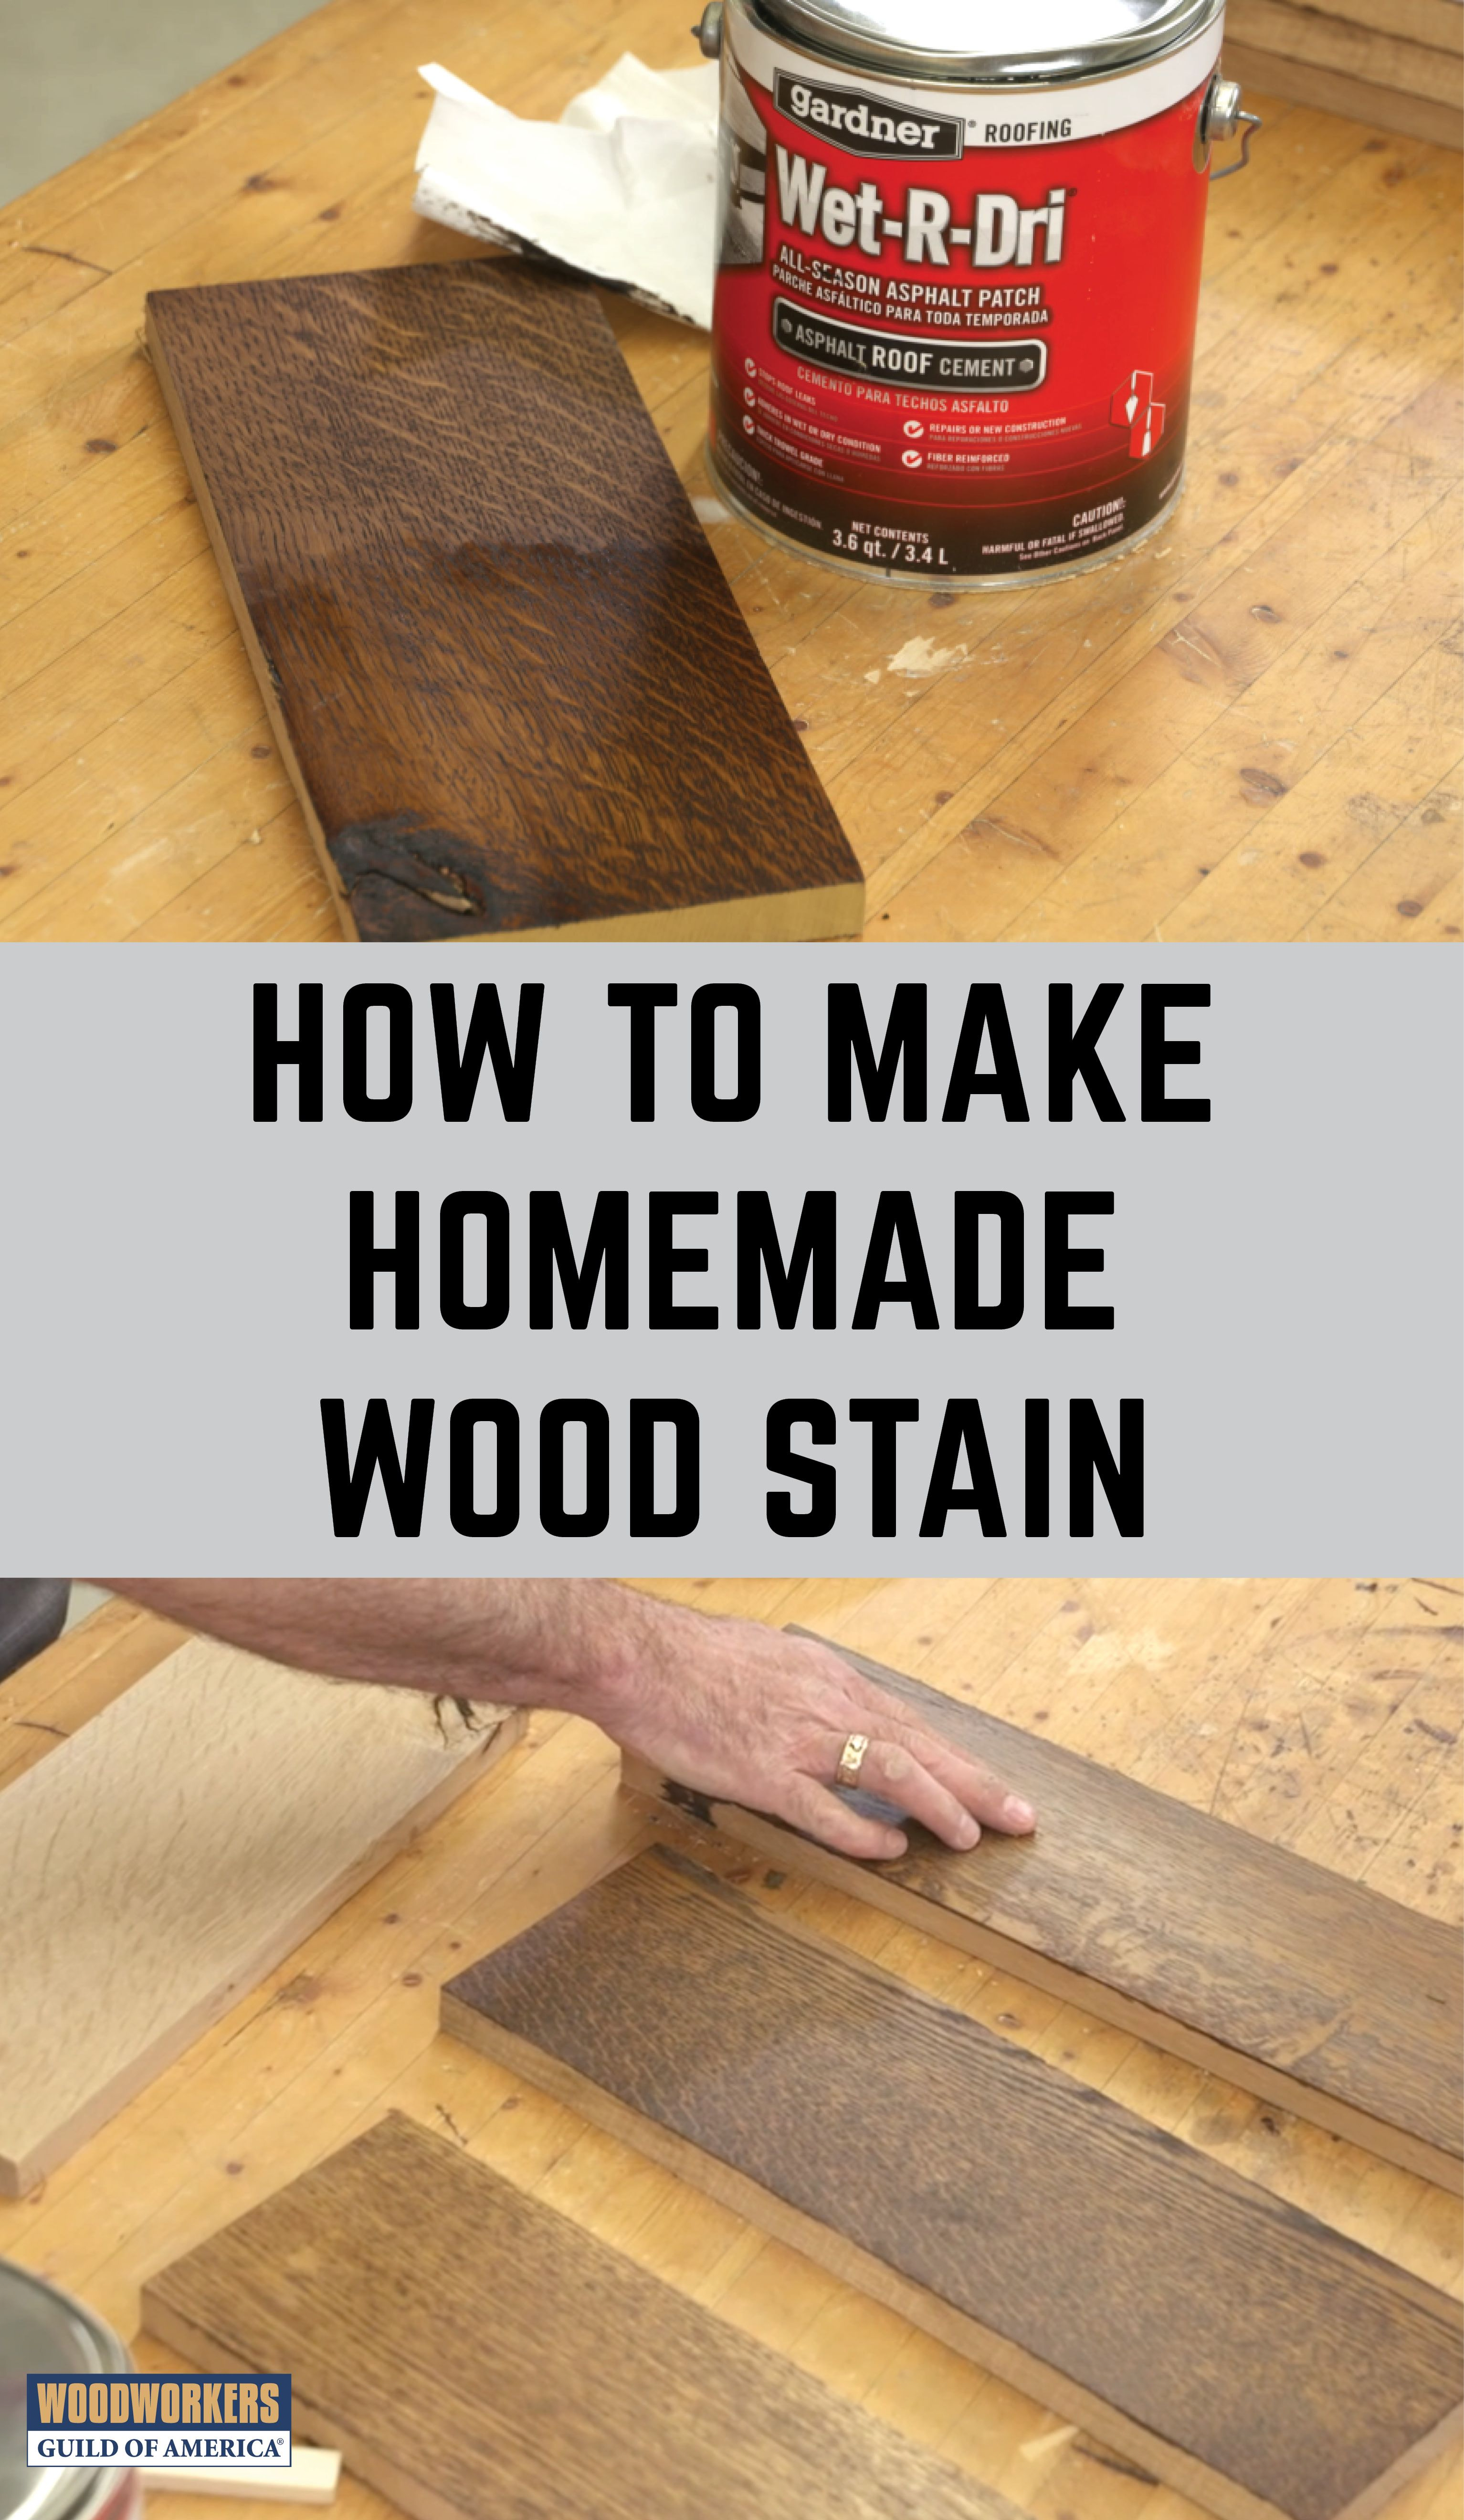 Making Homemade Wood Stain Wood Finishing In 2019